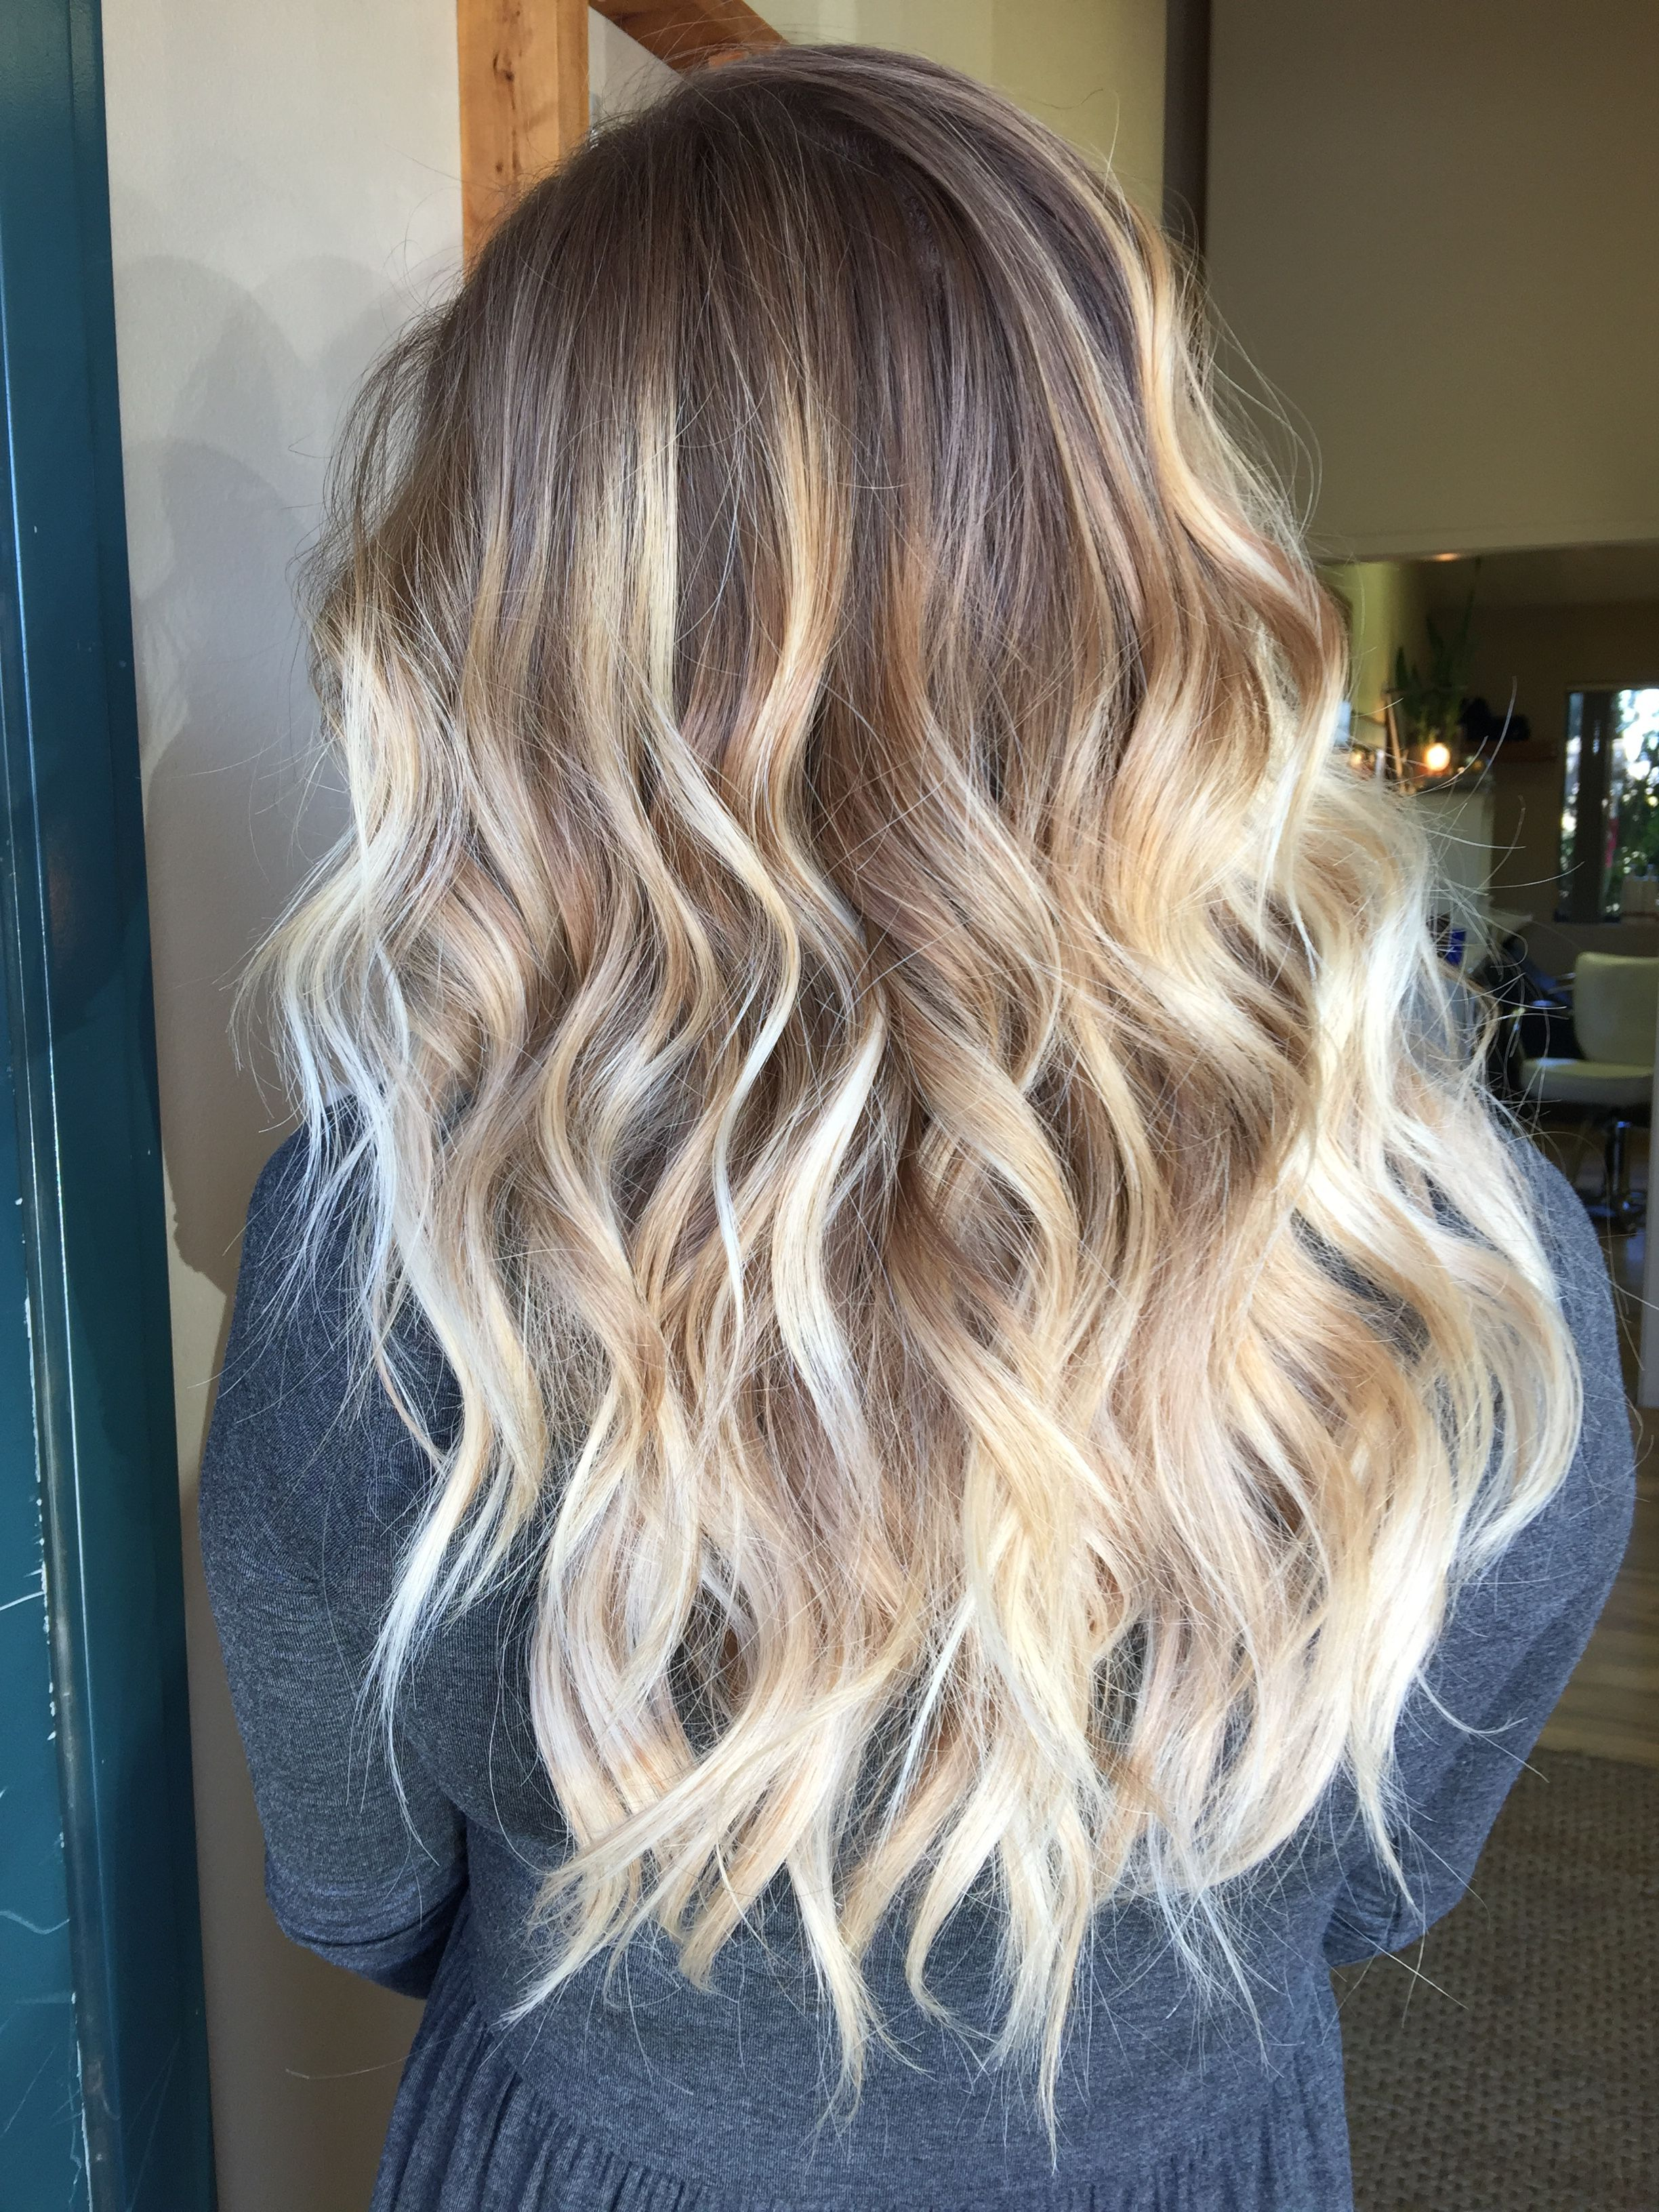 Blonde Dimension With Halo Extensions By Thomastimes Hair Beauty Hair Face Hair